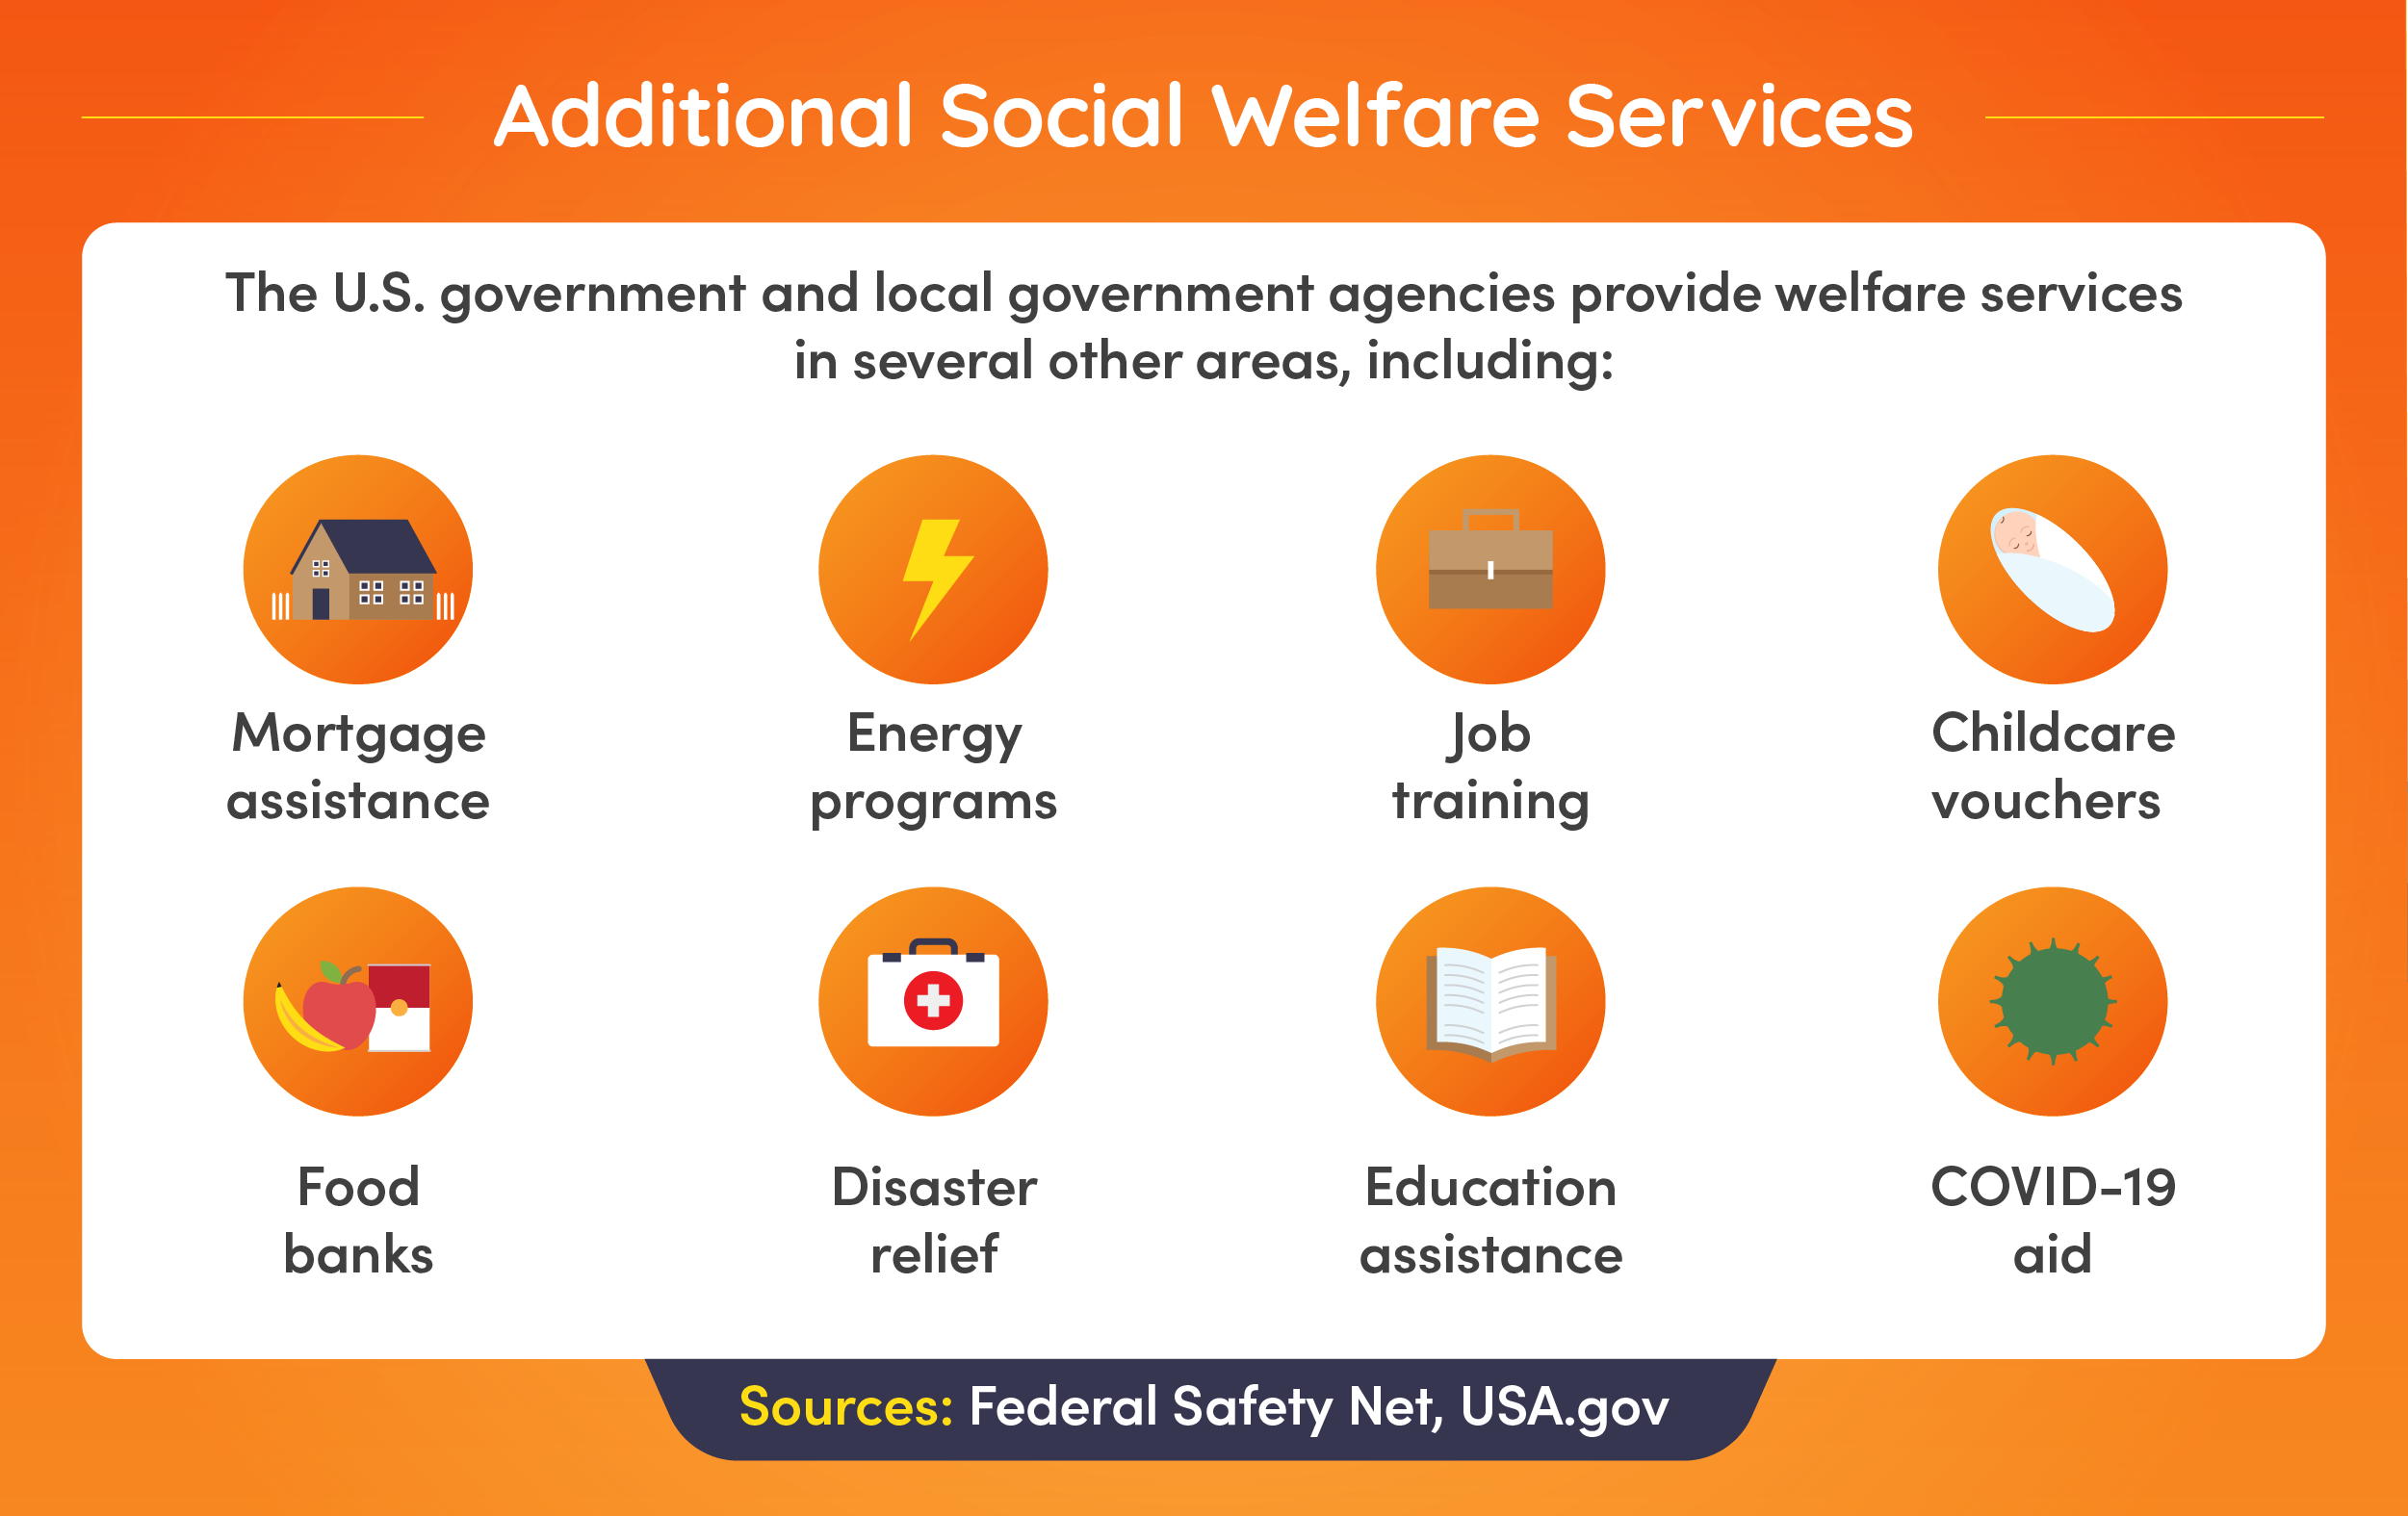 The U.S. government and local government agencies provide a wide range of social welfare services.